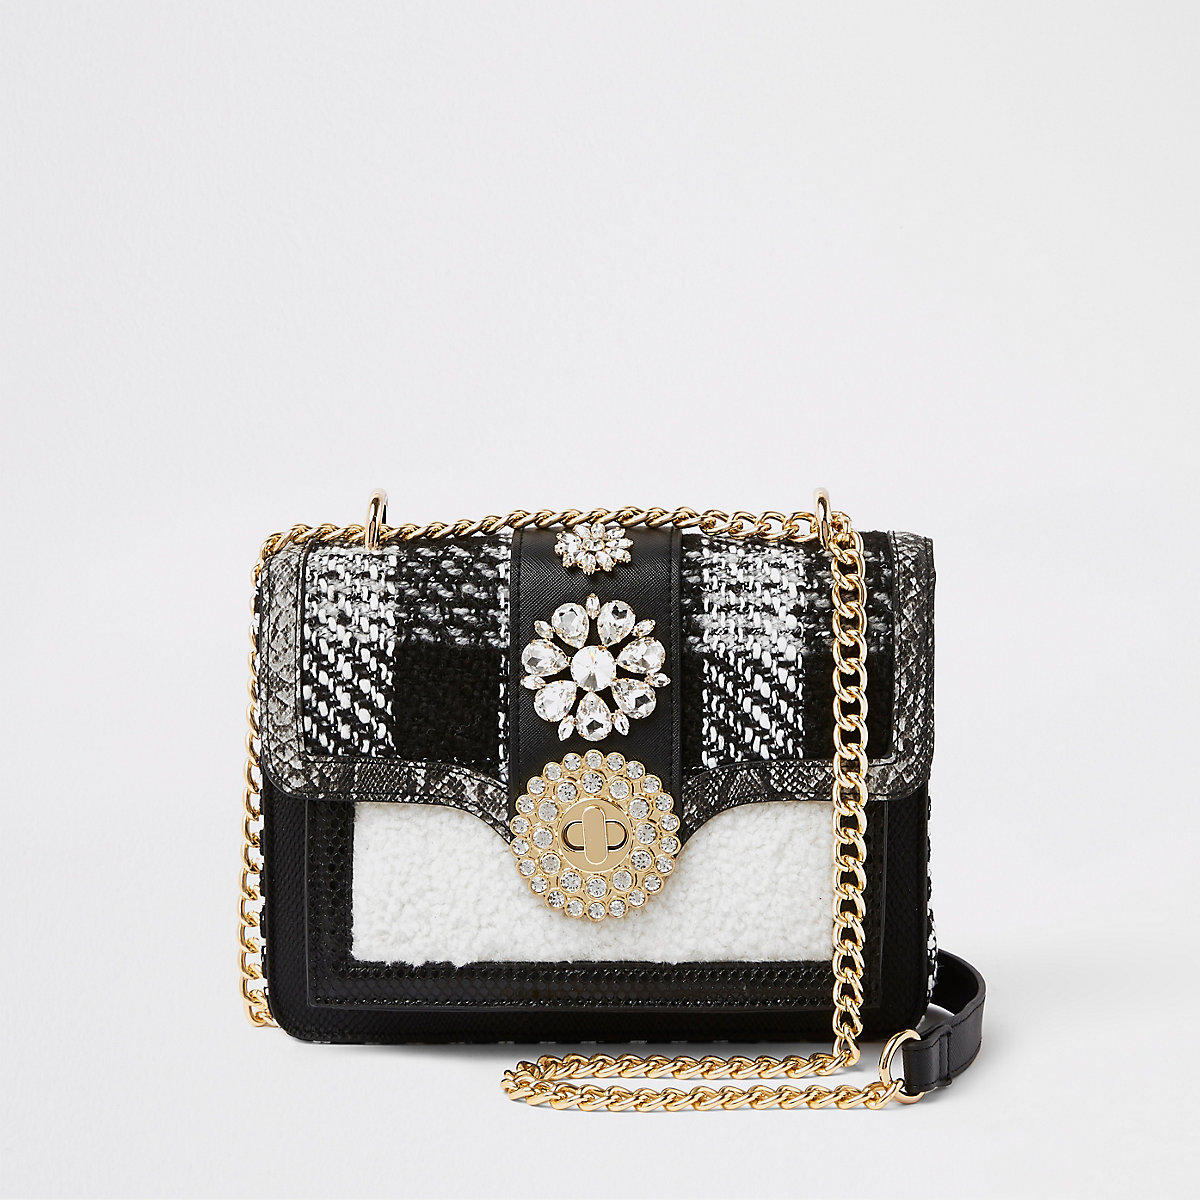 ea164f3ea1c Black and white embellished cross body bag - Cross Body Bags - Bags   Purses  - women